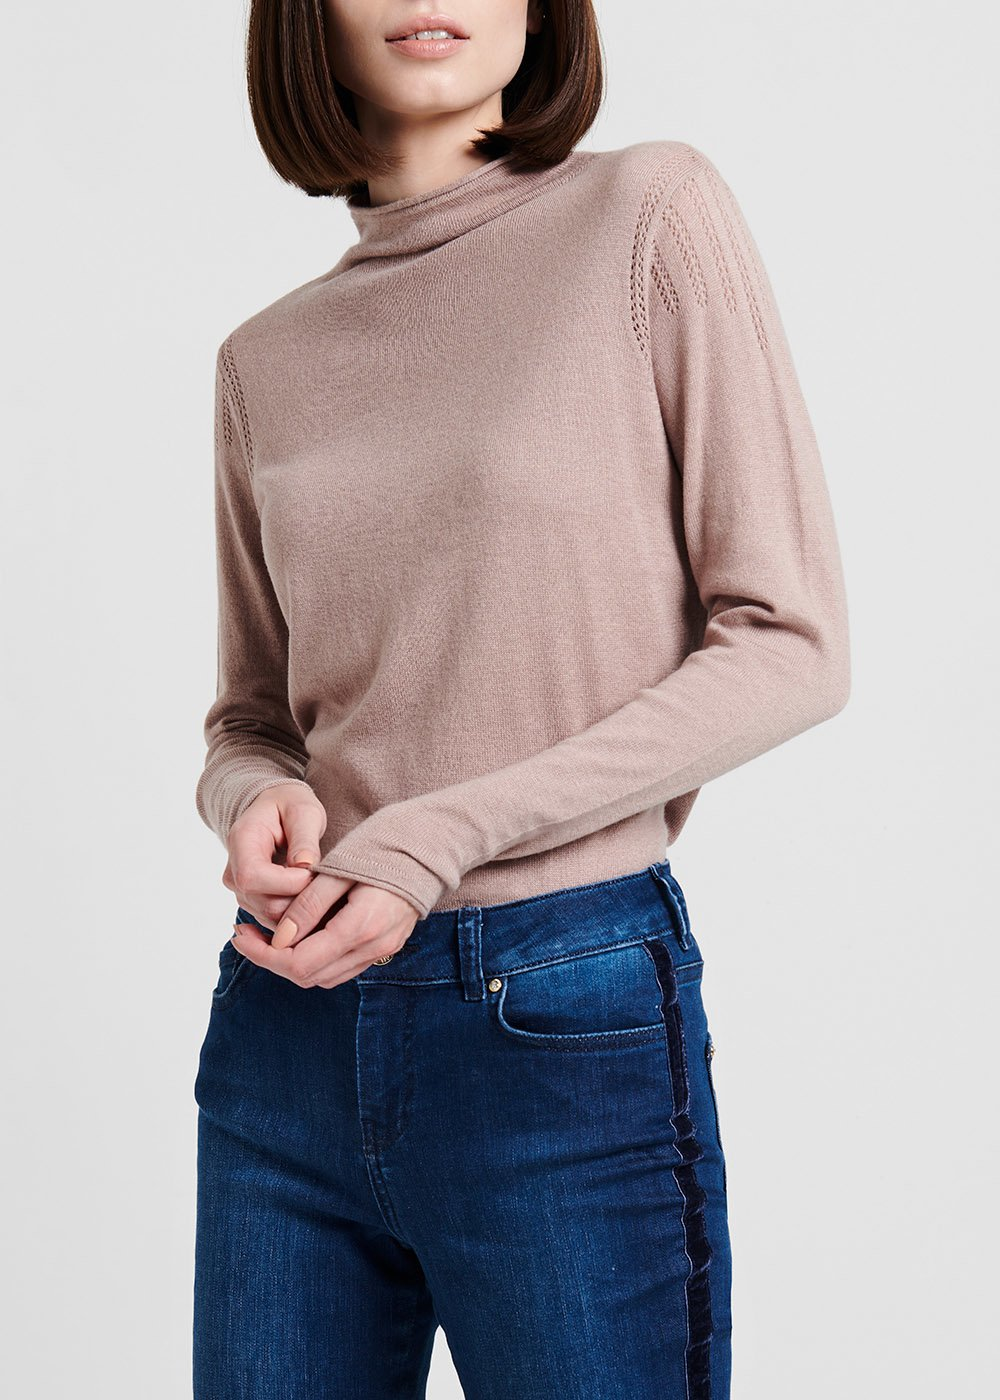 Sweater with wool with crater neck, solvent – coloured - Grey - Woman